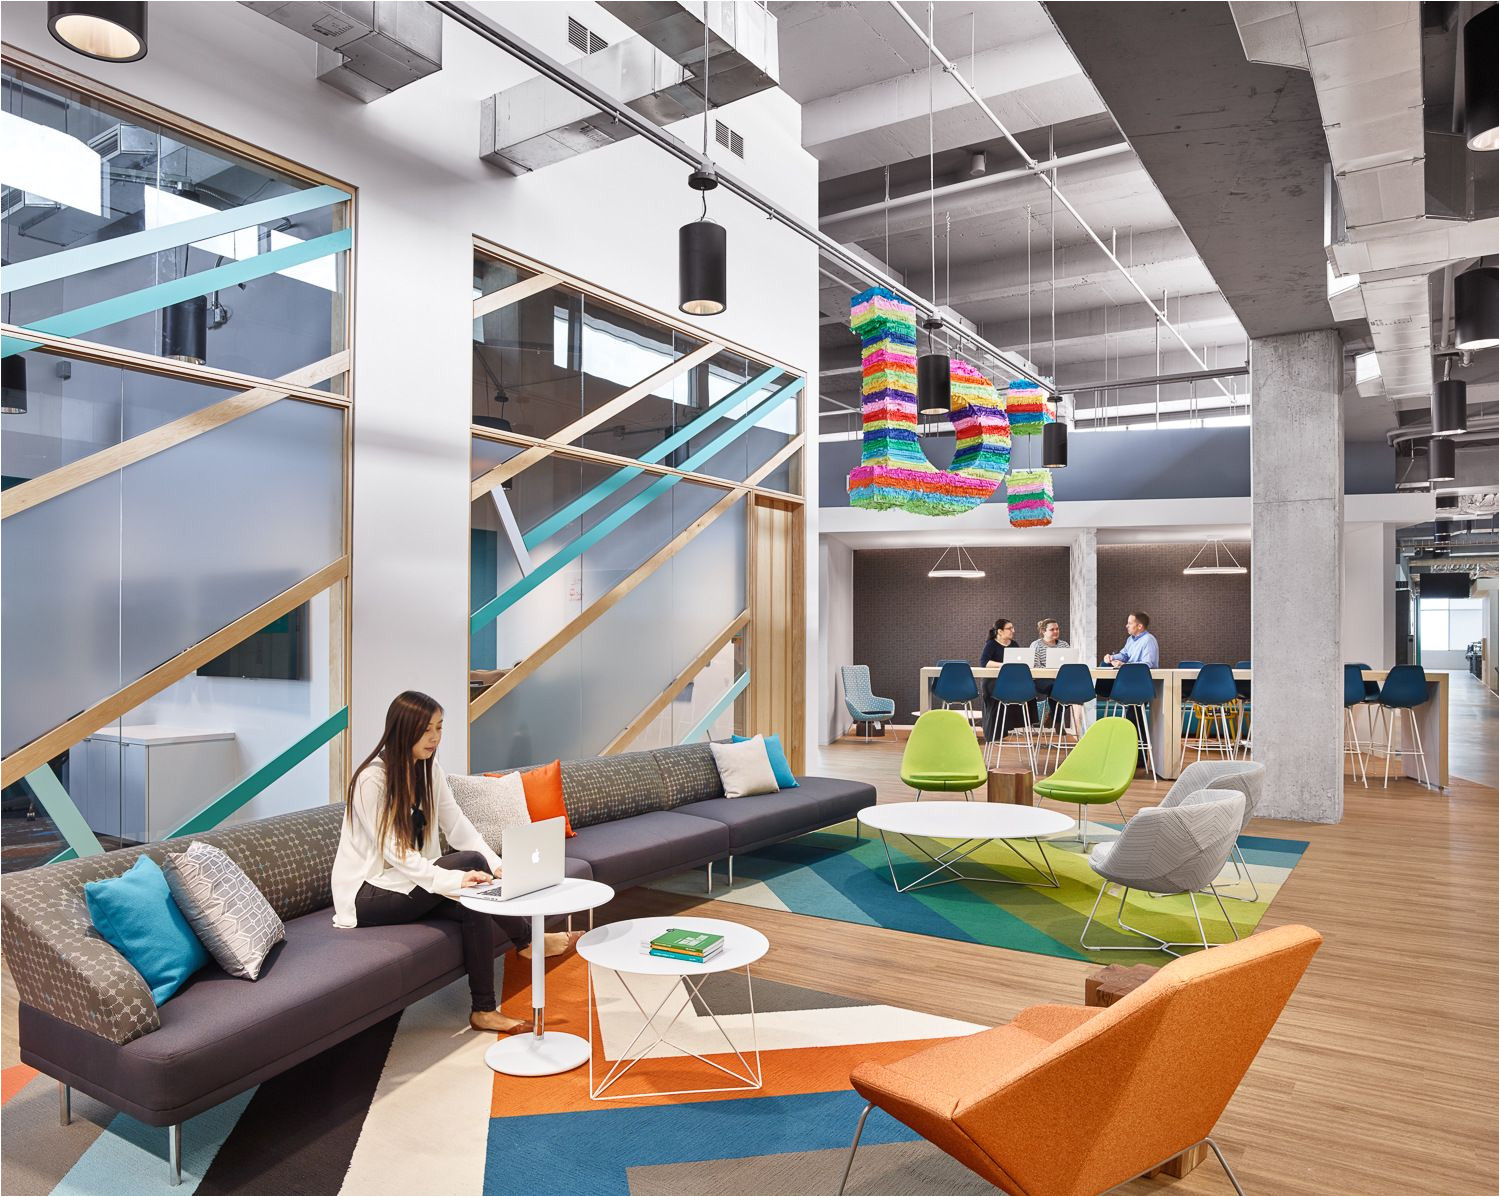 lauckgroup has designed the new headquarters of bazaarvoice located in austin texas bazaarvoice connects brands and retailers to the voices of their